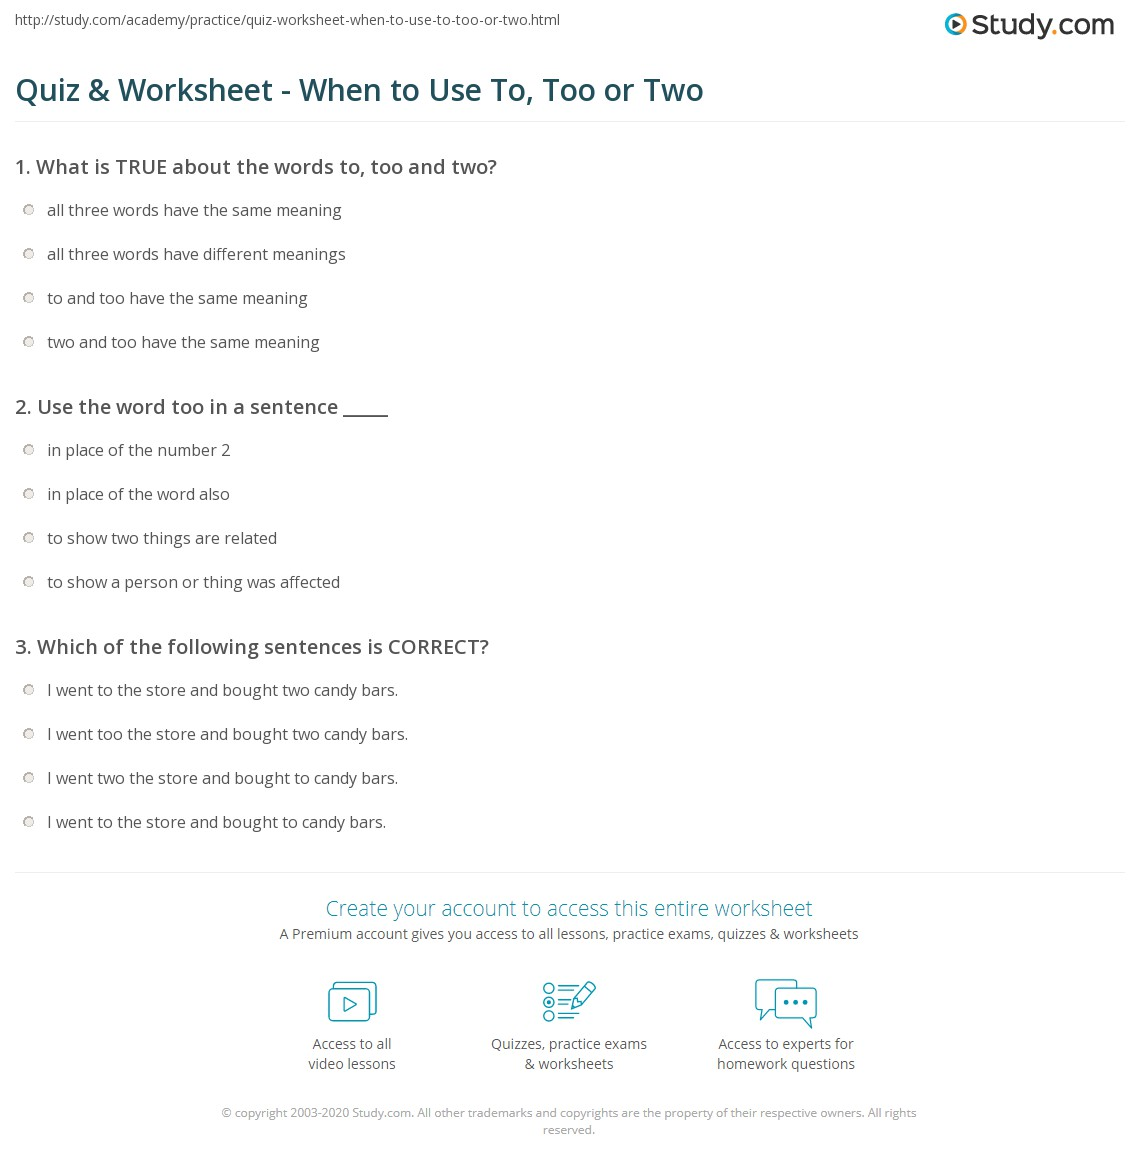 Quiz & Worksheet - When to Use To, Too or Two | Study.com